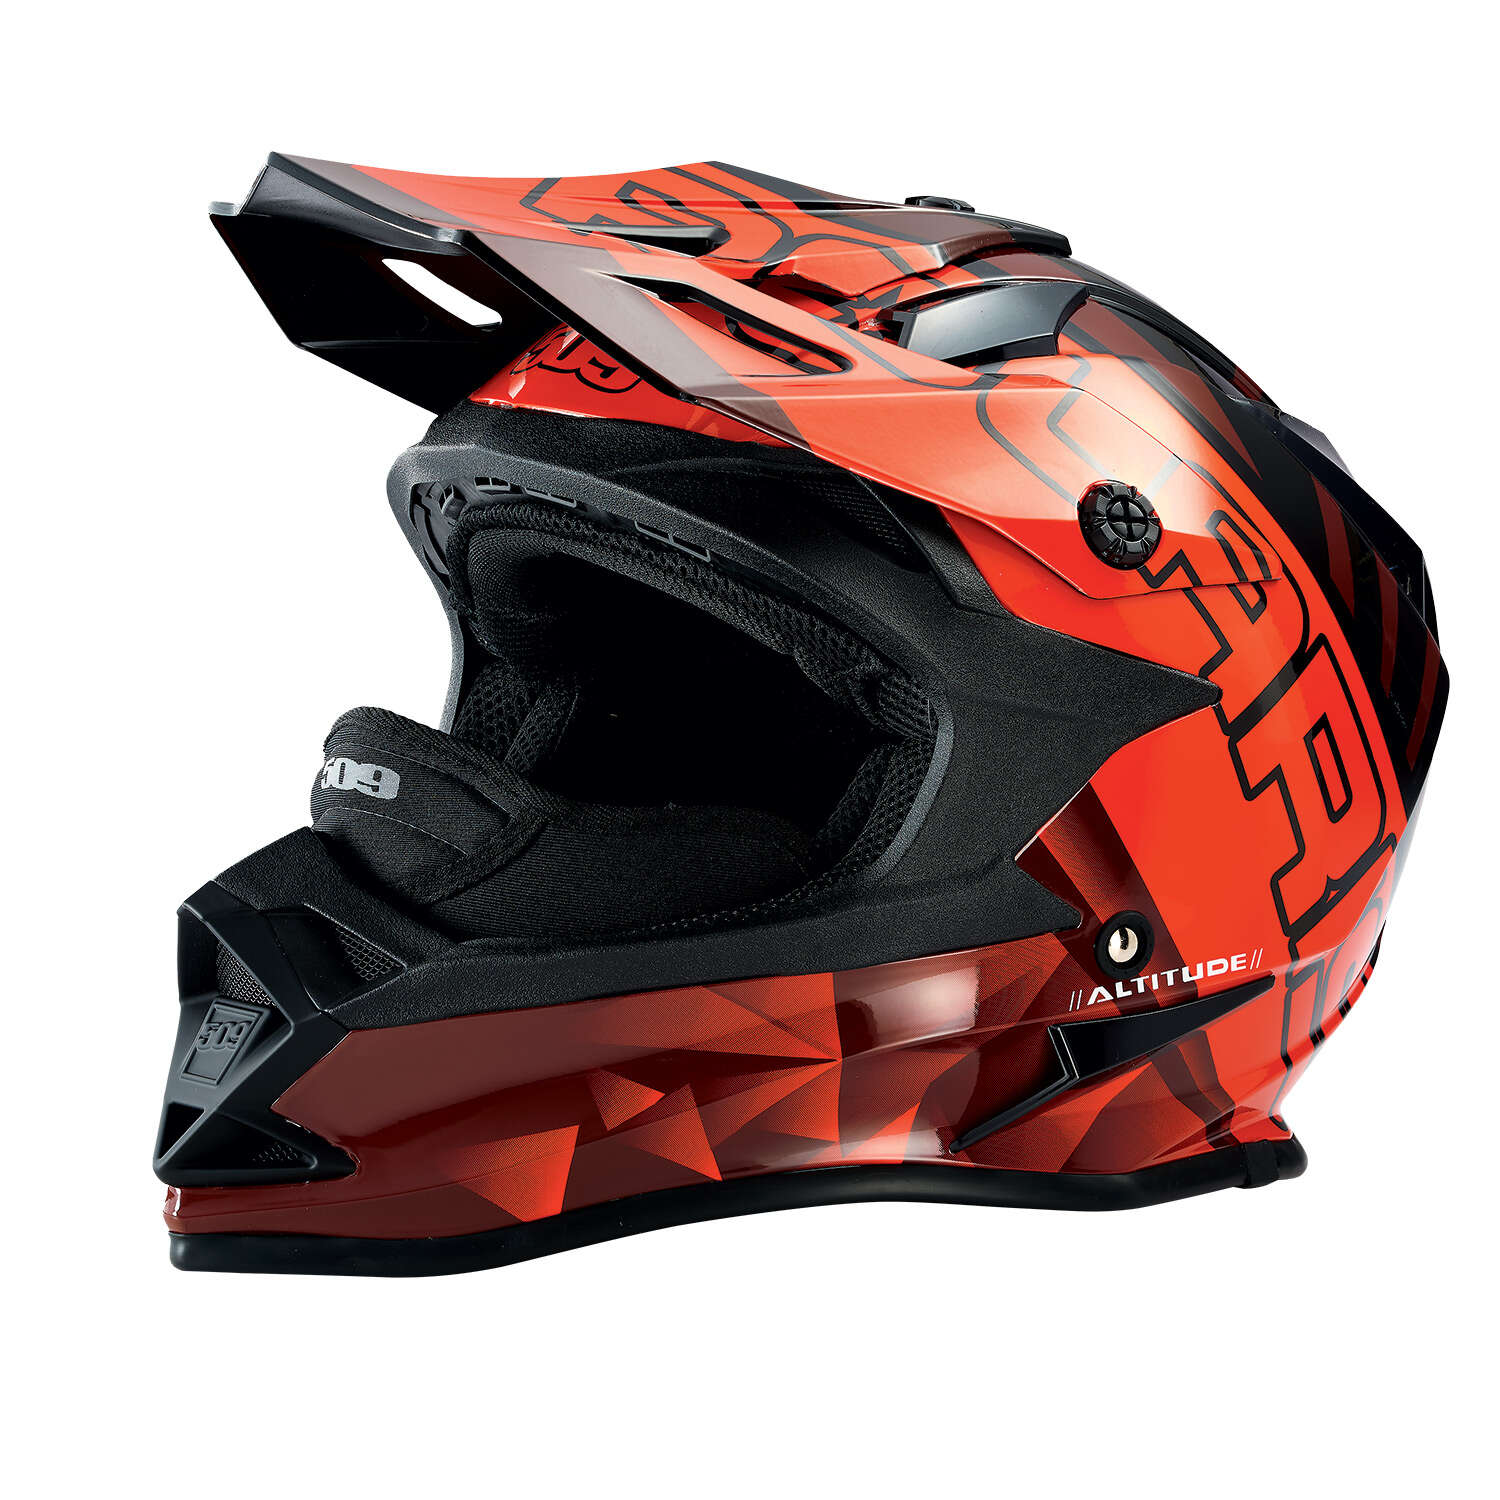 509® Altitude Adult Moto Helmet with Camera Mount, Red